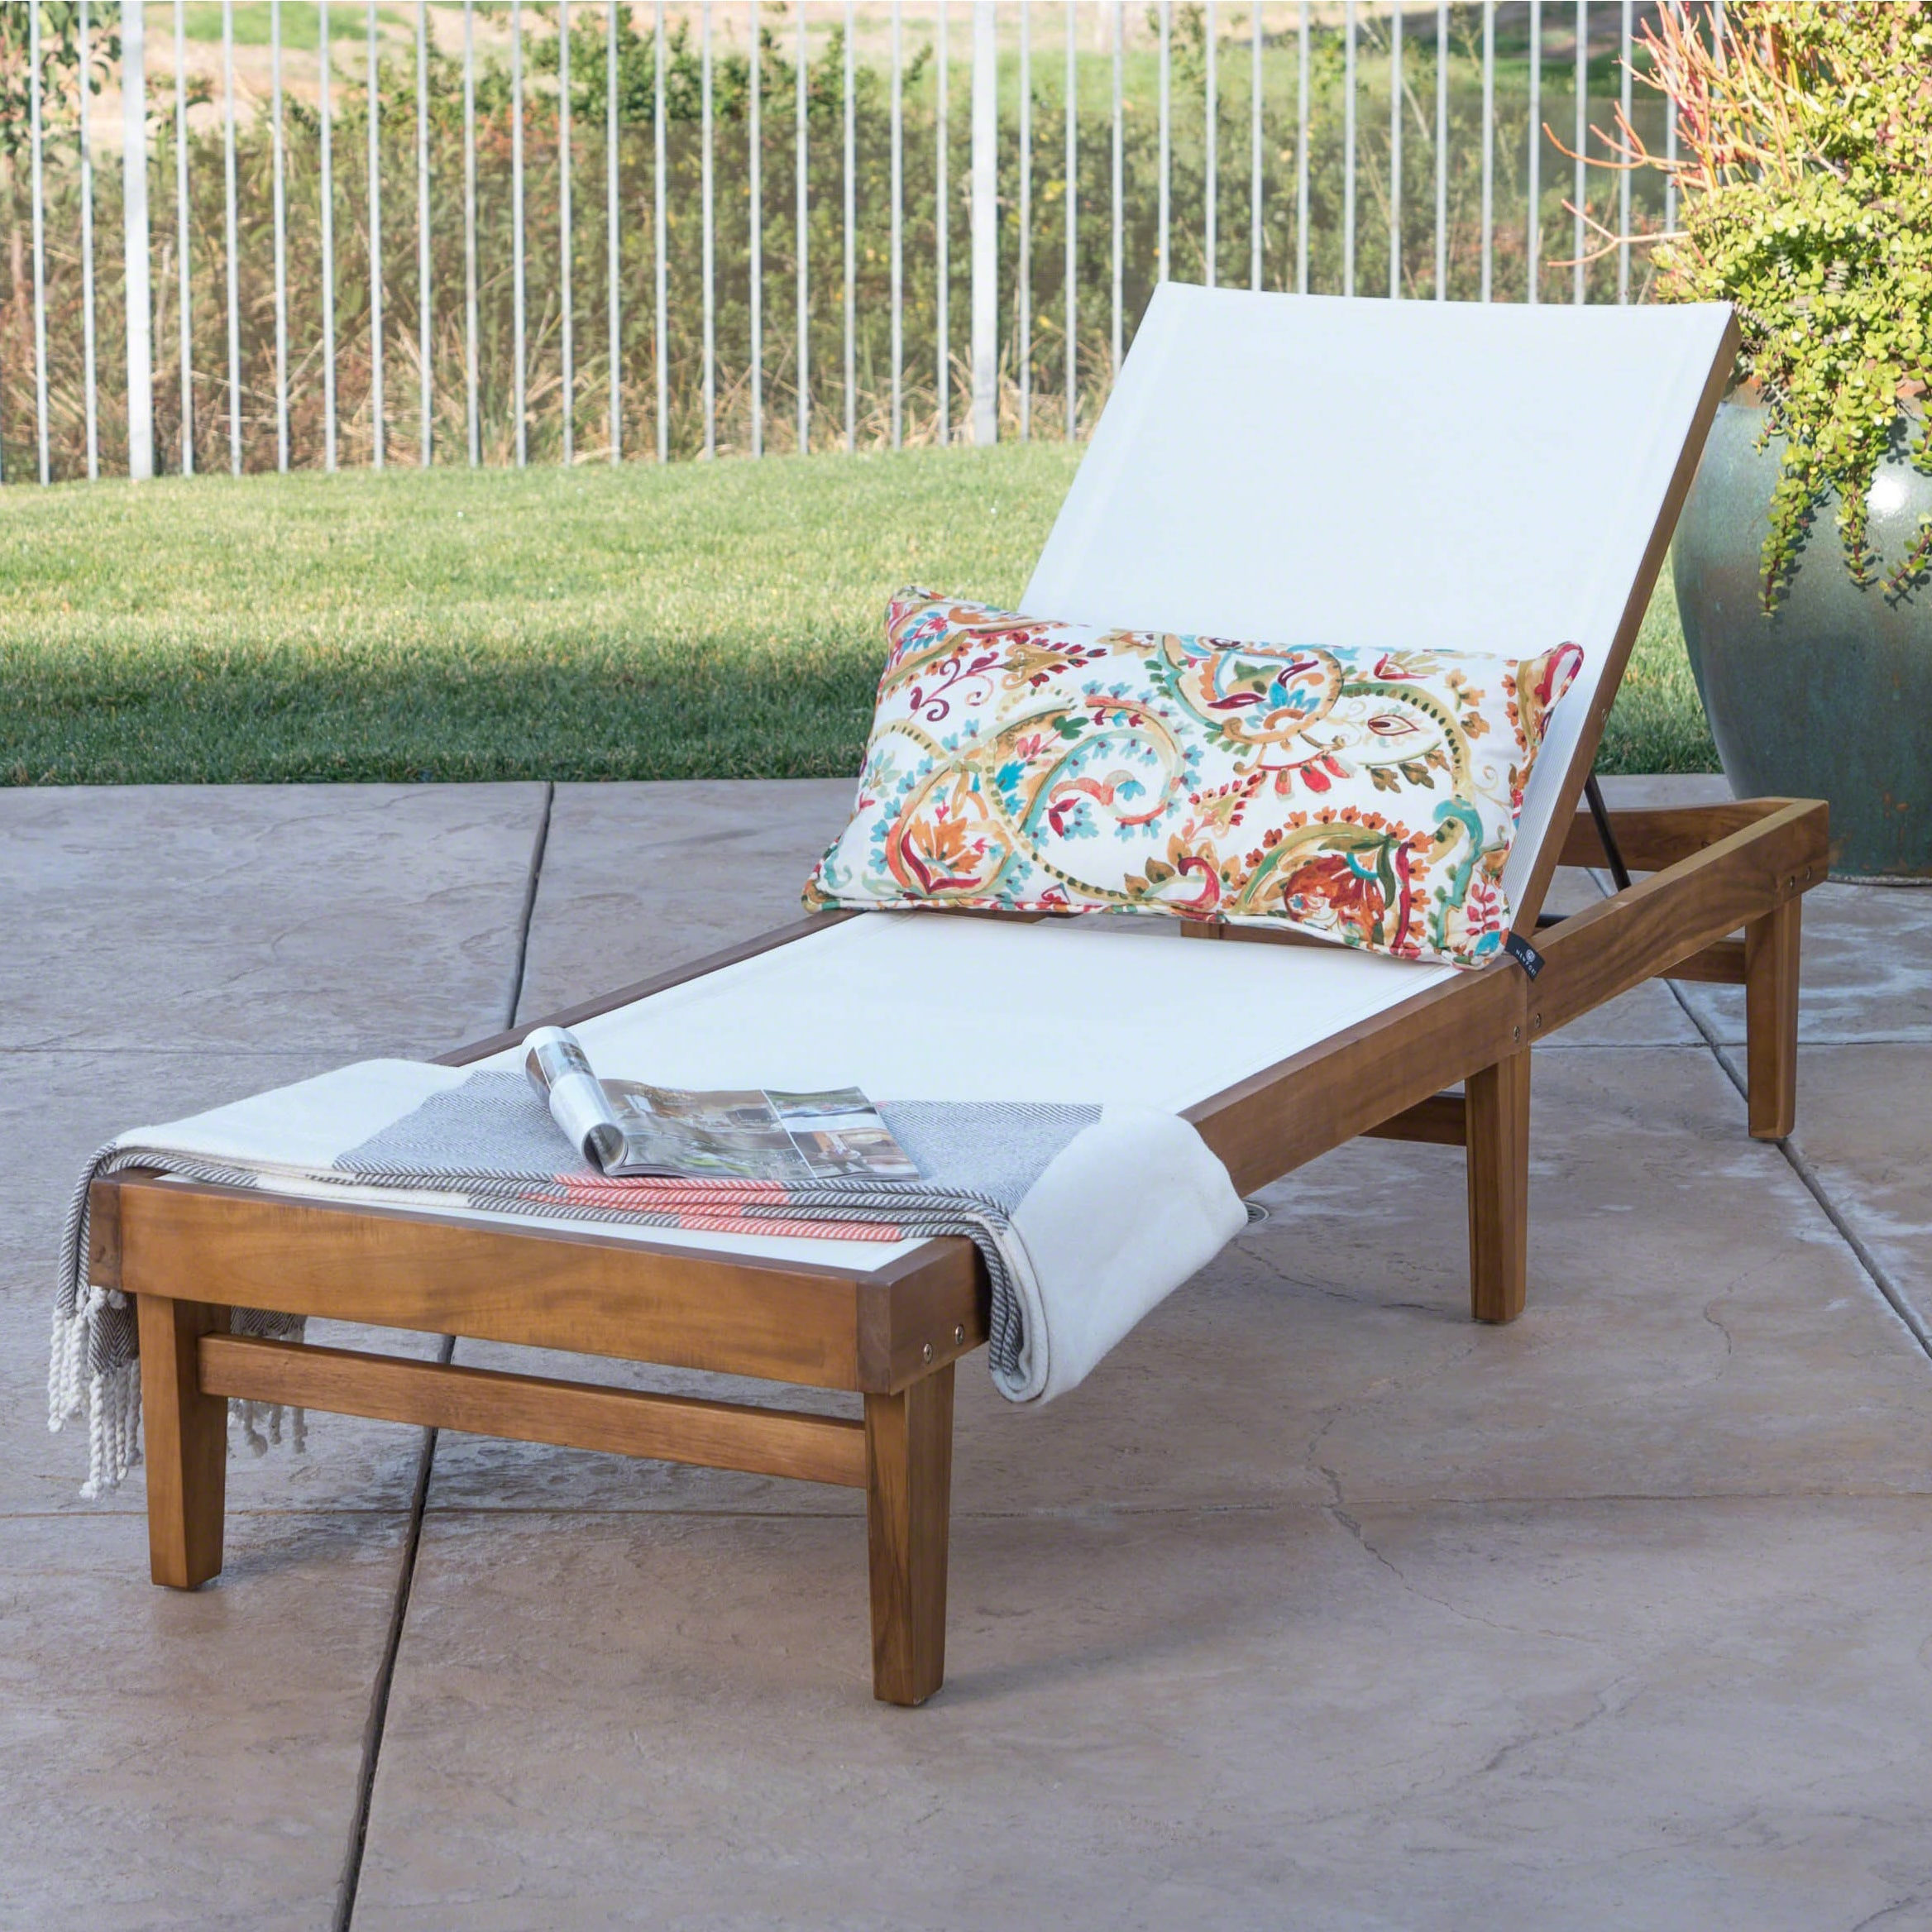 Christopher Knight Home Summerland Outdoor Acacia Wood Mesh Chaise Lounge by